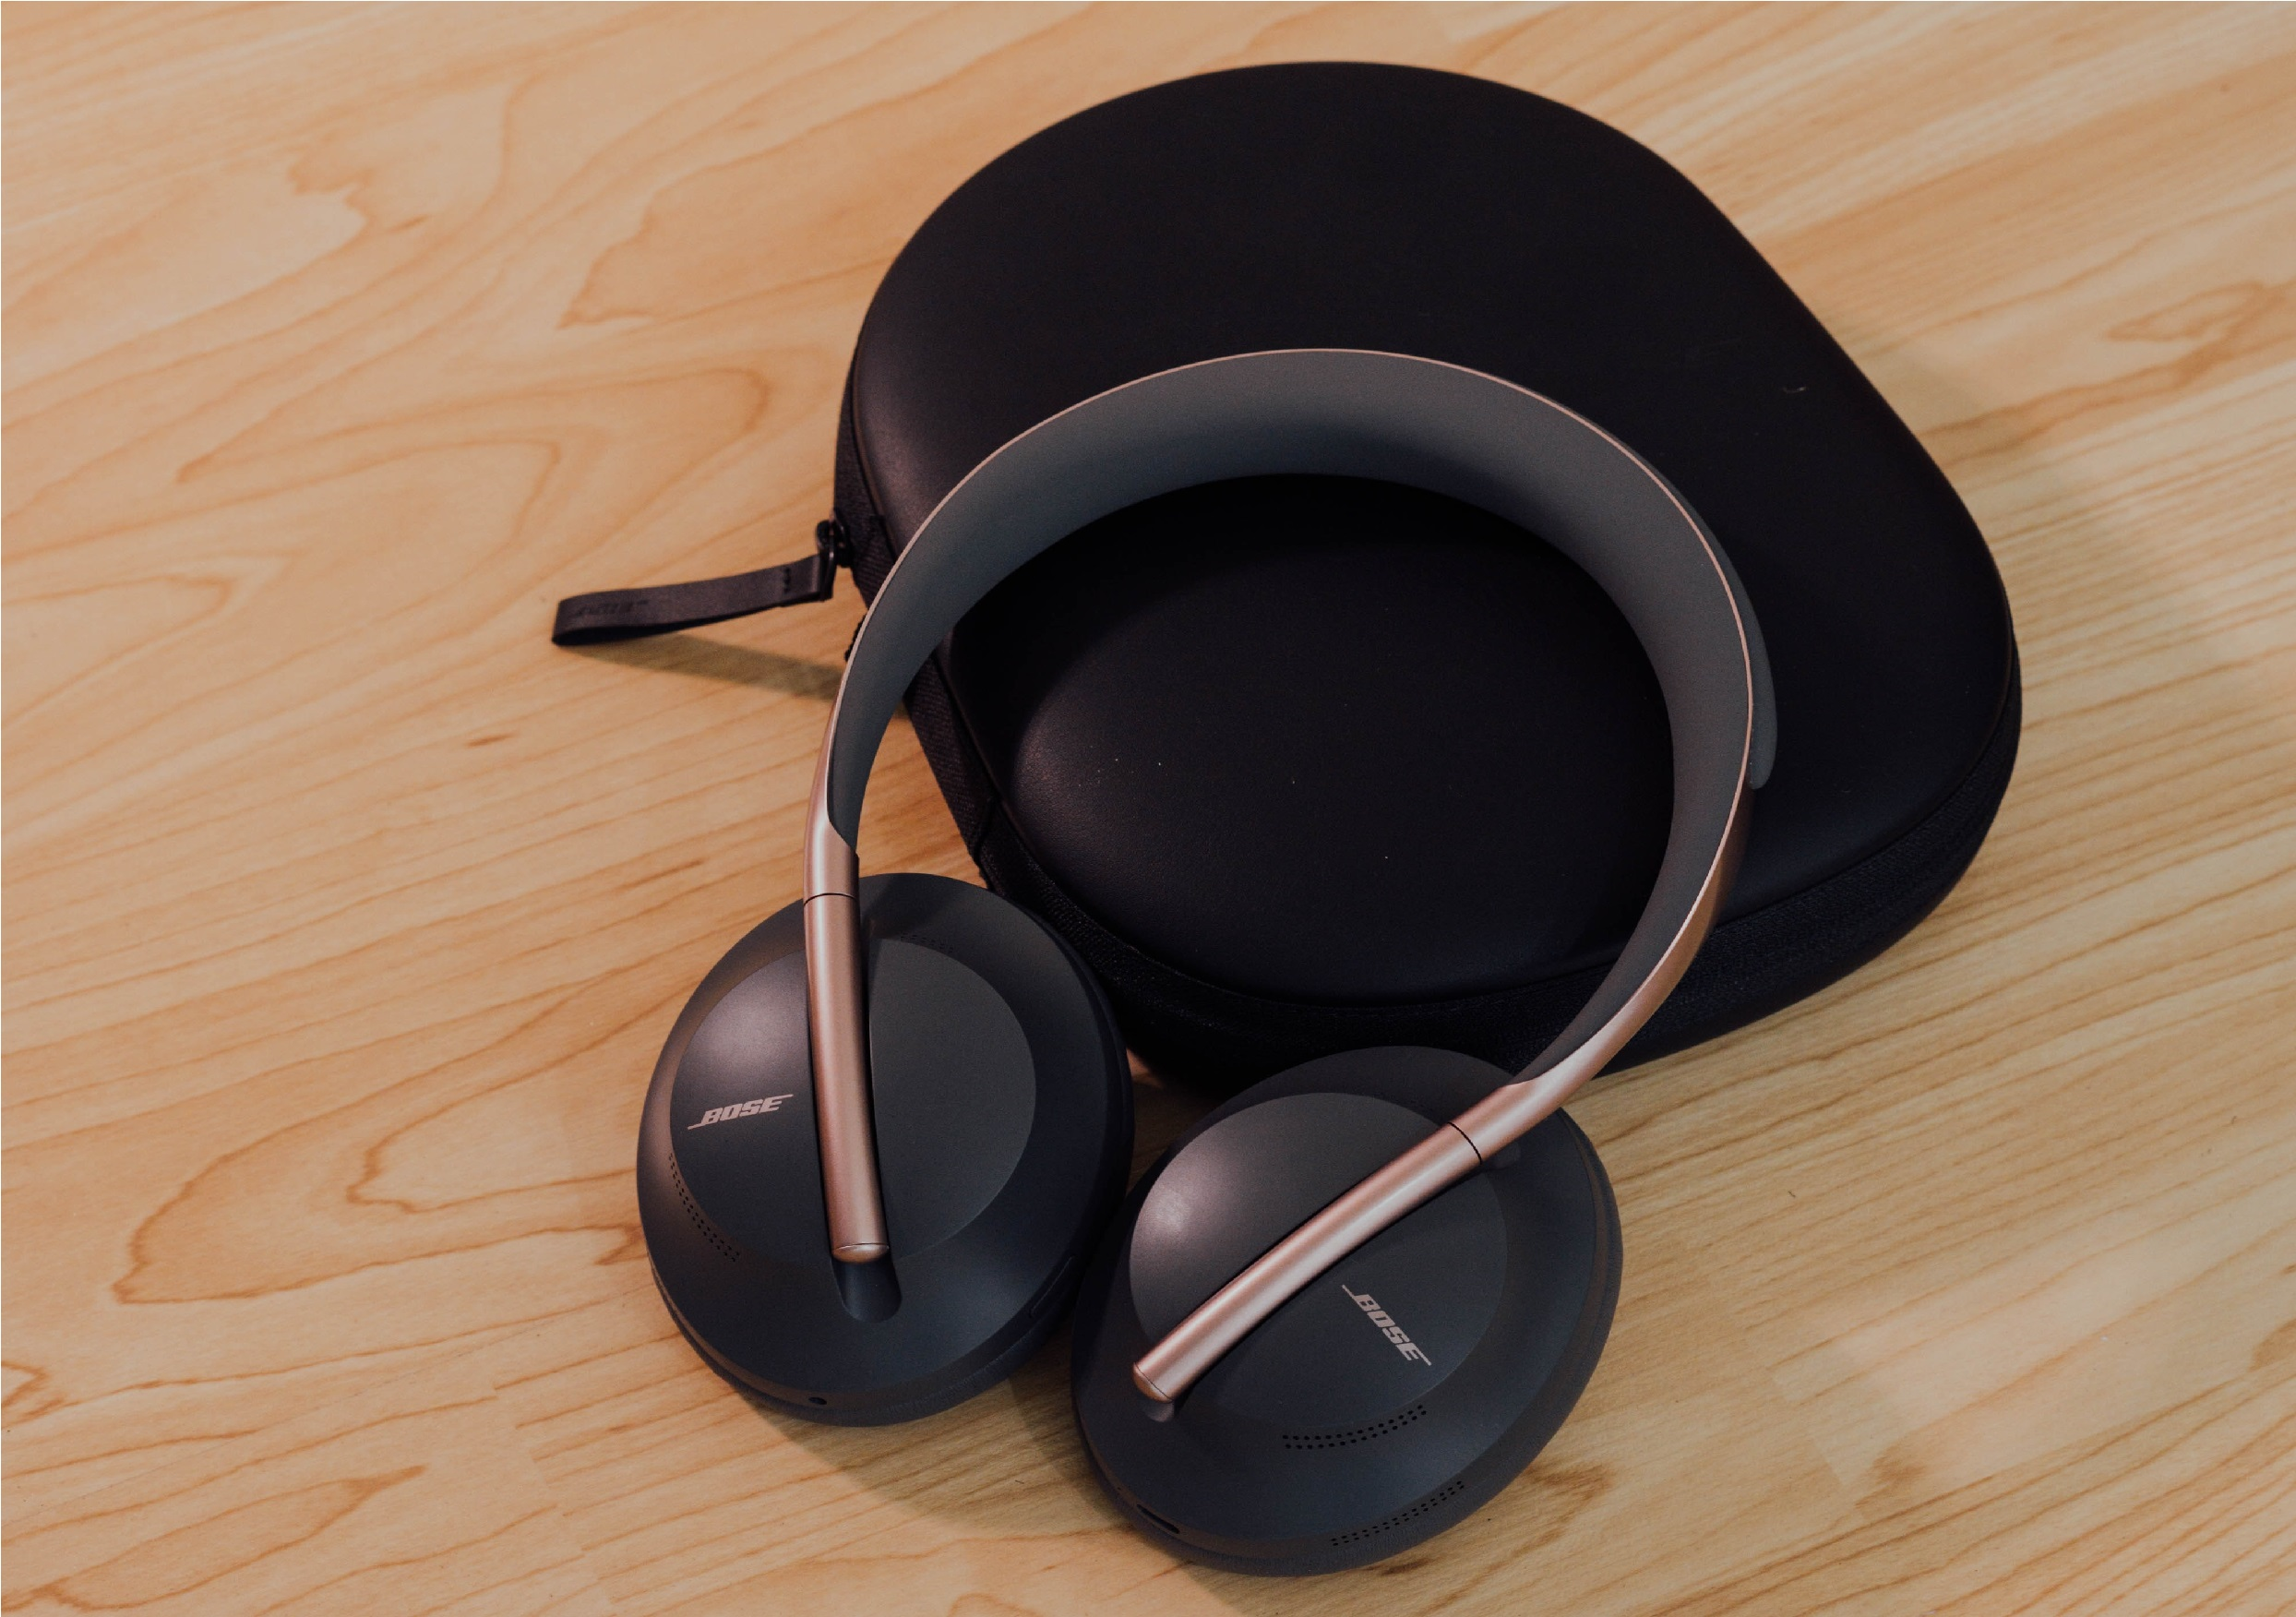 Best Bose Headphones 2020: Shopping Guide & Review